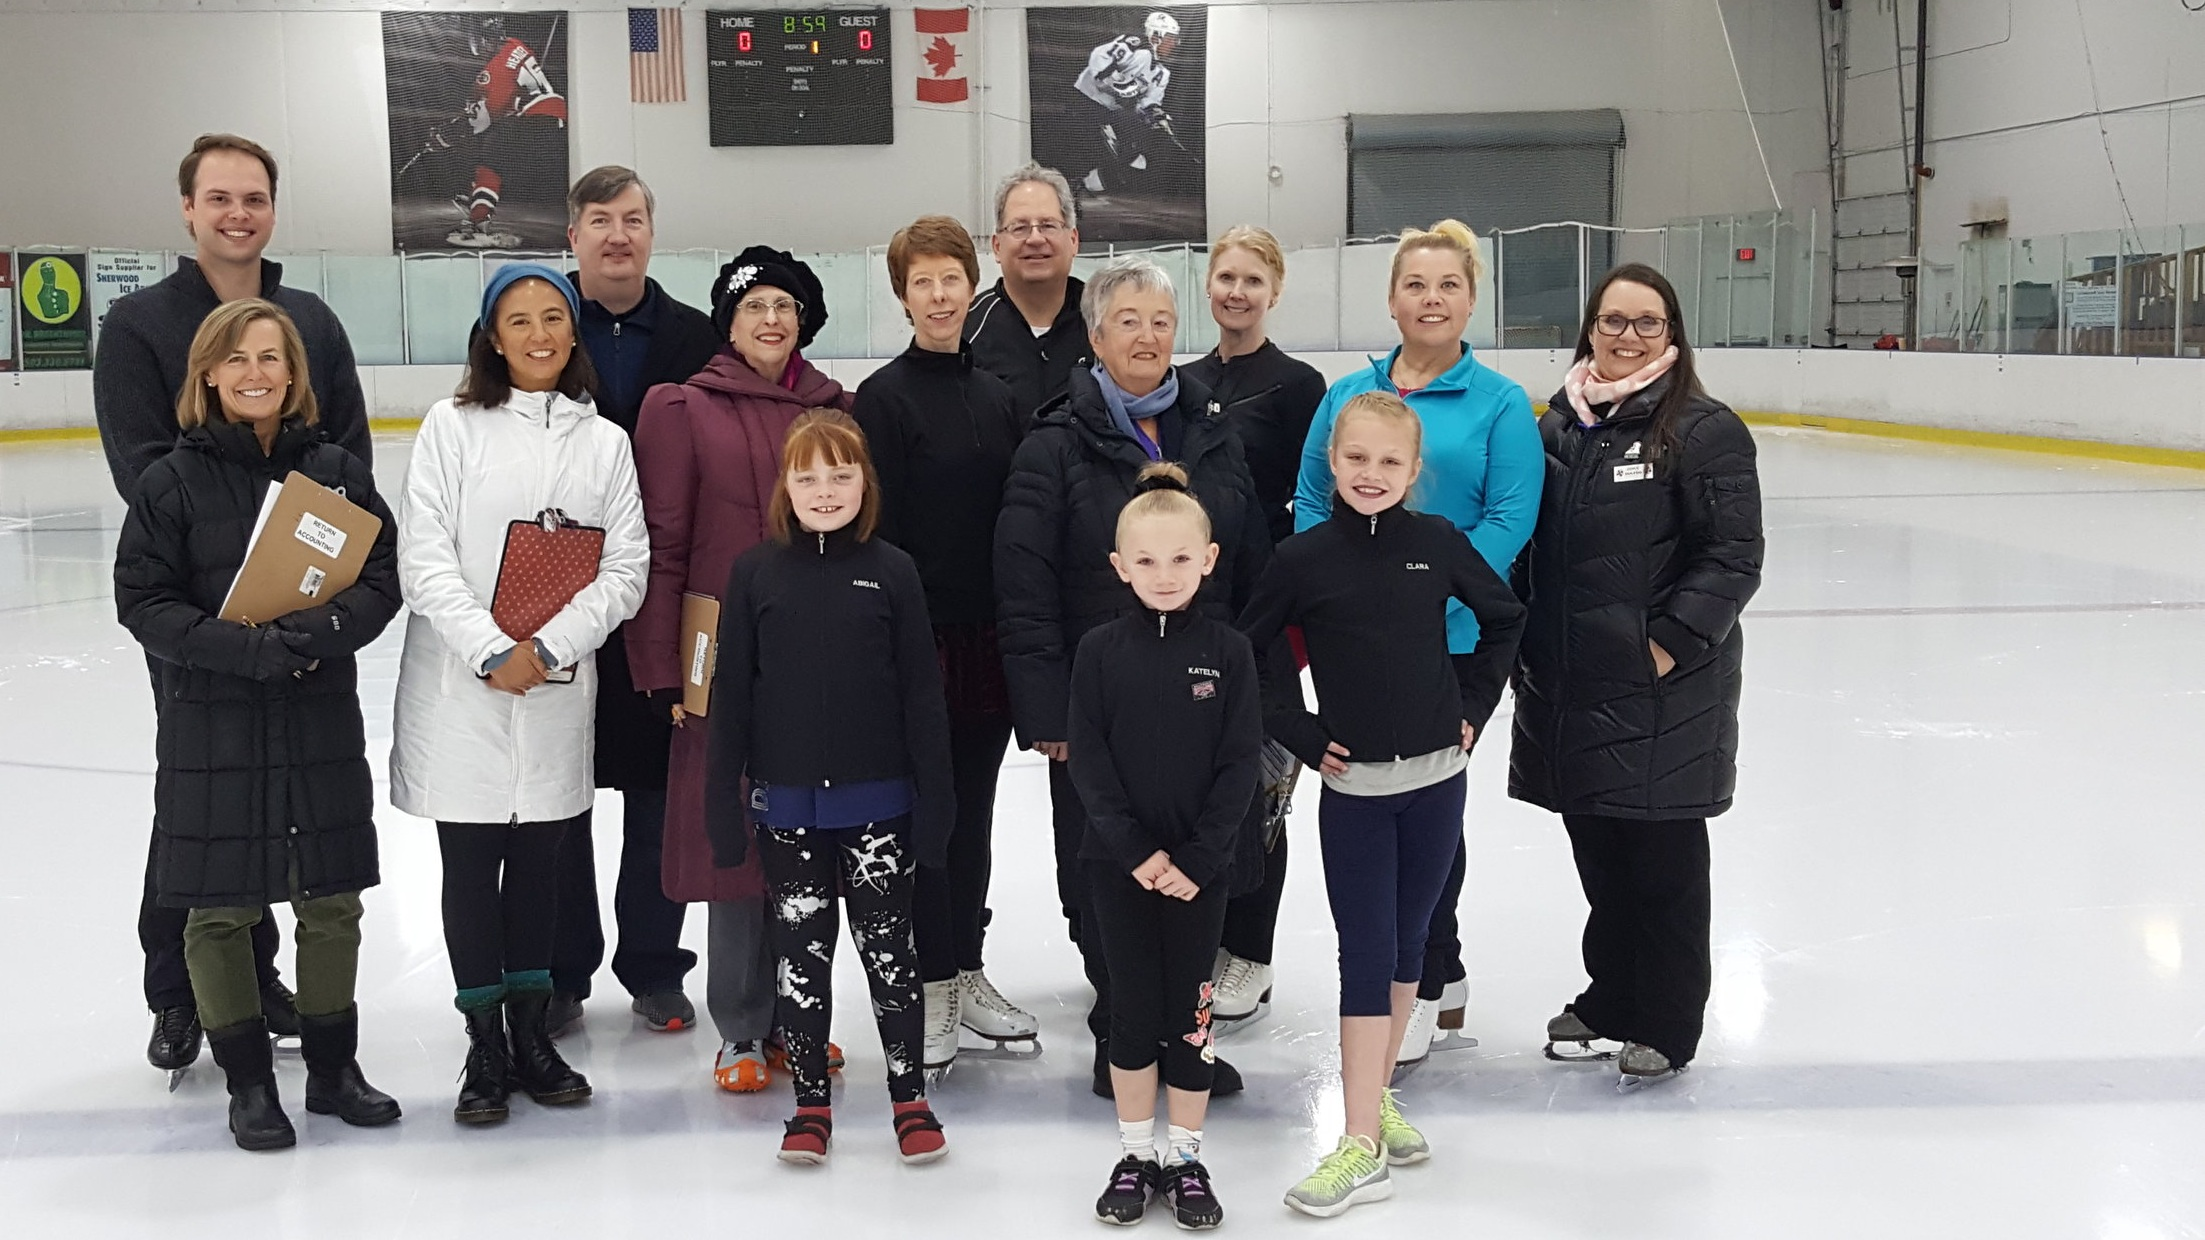 Sherwood Invitational Results 2018 - Basic 64th Place – Emily SpurillFree Skate 12nd Place – Matilda TeagueFree Skate 32nd Place – Tyler DouglasFree Skate 4 Group A1st Place – Bella Spurill3rd Place – Katelyn GearyFree Skate 4 Group B2nd Place – Paige Patterson4th Place – Adeline AhrensFree Skate 51st Place – Melian Xu2nd Place – Odelia Xiao5th Place – Hannah ChapinHigh Beginner1st Place – Emelia KesterNo Test Singles Group A1st Place – Mia TanakaNo Test Singles Group C1st Place – Abigail LehighPre-Juvenile Girls3rd Place – Emma WeiPre-Preliminary Group A3rd Place – Clara Crumal4th Place – Paige Day5th Place – Audrey Lapham6th Place – Tara KhoshnevisPre-Preliminary Group B3rd Place – Jillian North6th Place – Alex SpurillPreliminary Group A2nd Place – Ryan Azadpour4th Place – Erika SetiawanPreliminary3rd Place – Reese WakemanOpen Juvenile Ladies1st Place – Xandra JohnstonJuvenile Girls1st Place – Claire CaoJuvenile Boys2nd Place – Mark WilliamsIntermediate Ladies3rd Place – Angelina Cao7th Place – Grace CliffordNovice Ladies4th Place – Kaizen OudomJunior Ladies1st Place – Emma TangFIGURESLFI-RBI Counter Final Standings1st Place – Heath Wright2nd Place – Grace CliffordRBI-LBI Circle Eight1st Place – Tina HoltRBO-LBO Circle Eight1st Place – Tina HoltRFI-LFI Circle Eight1st Place – Tina HoltRFI-LFI Double Three2nd Place – Katelyn Geary3rd Place – Abigail Lehigh4th Place – Clara CrumalRFO-LFO Circle Eight1st Place – Tina HoltRFO-LFO Rocker1st Place – Heath Wright